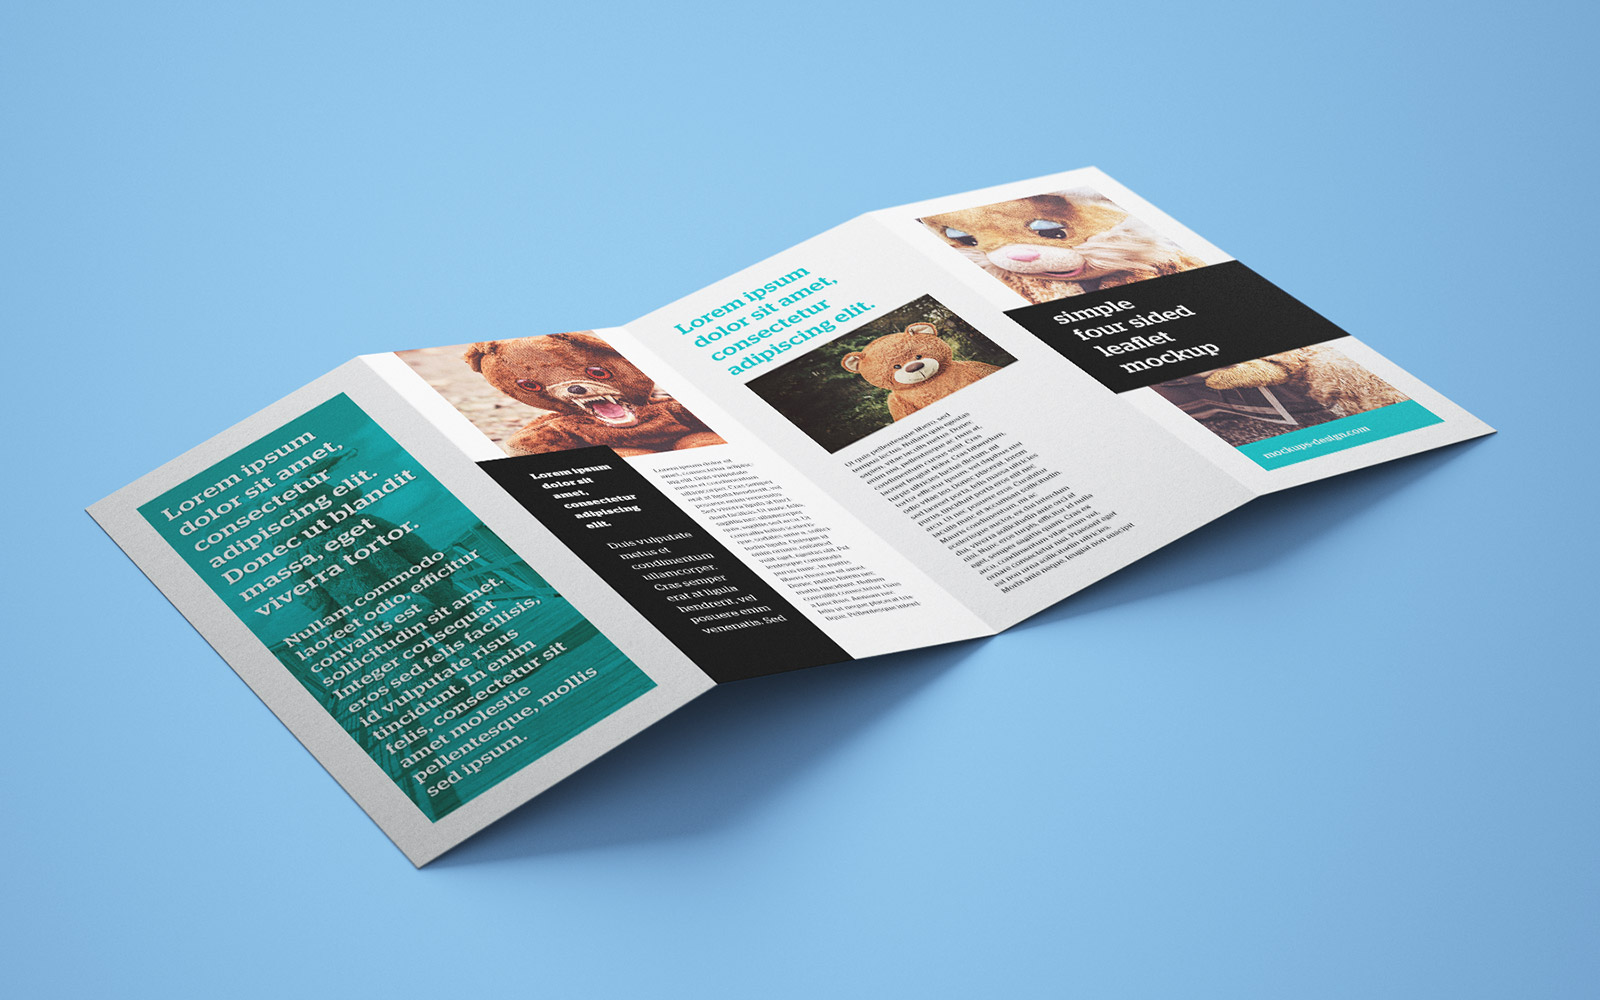 Free accordion 4 fold brochure leaflet mockup psd for Accordion fold brochure template